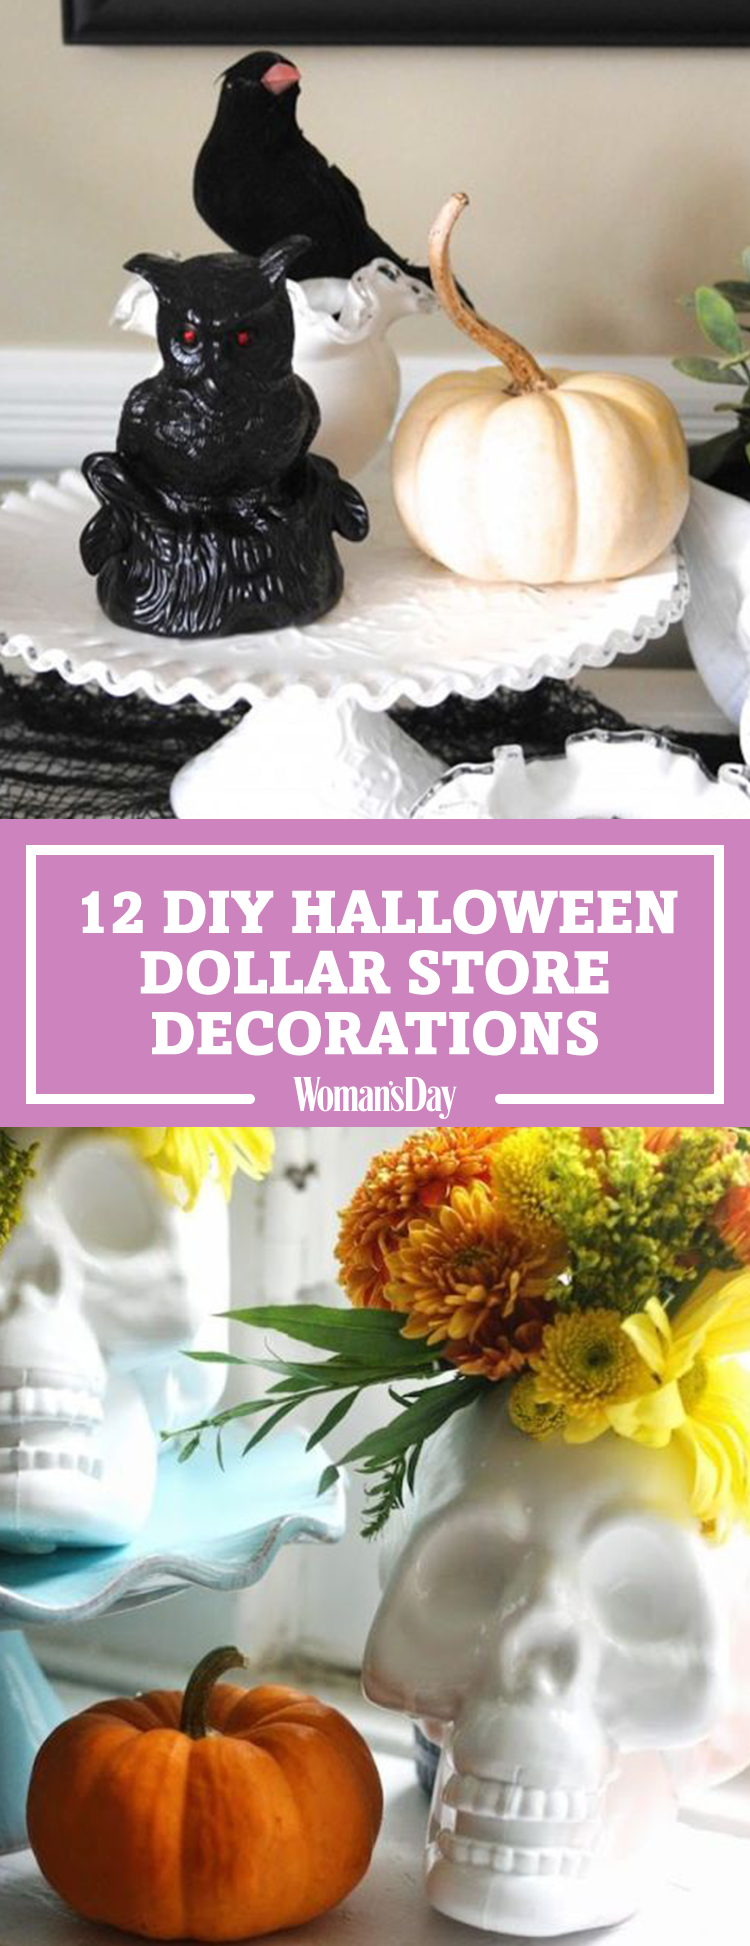 12 Easy Dollar Store Halloween Decorations